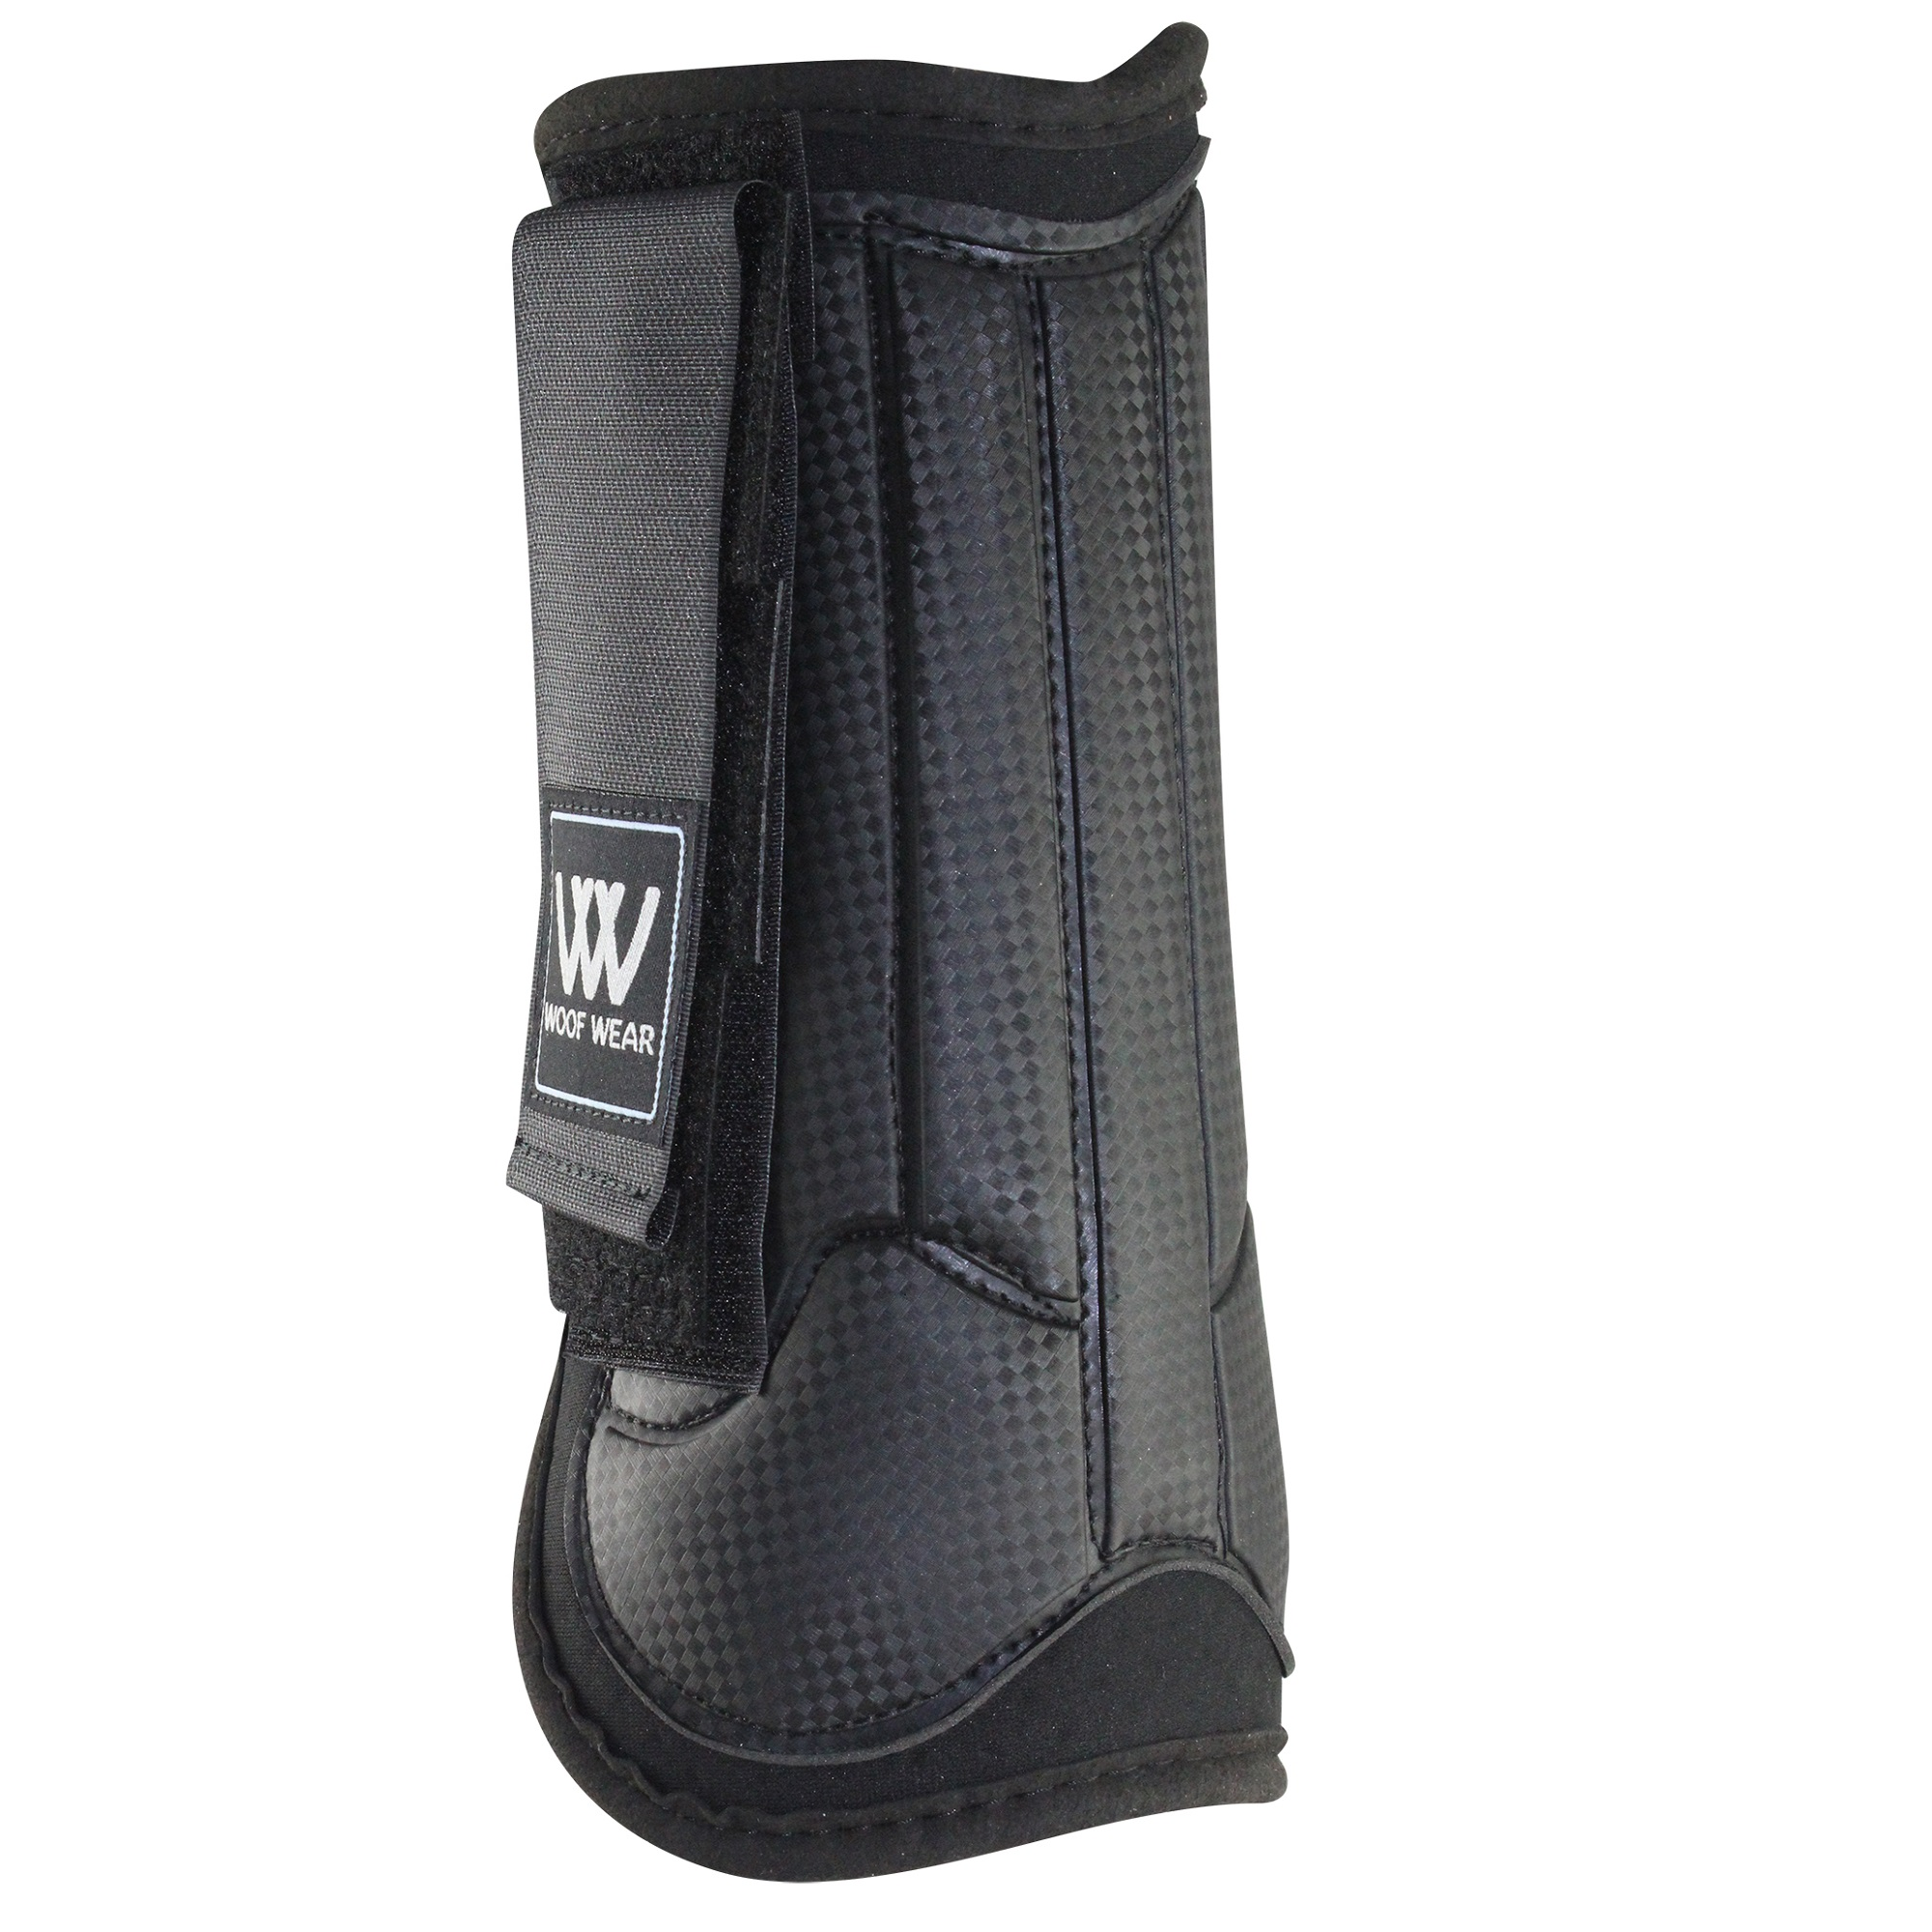 Front Legs Woof Wear Event Boots Black